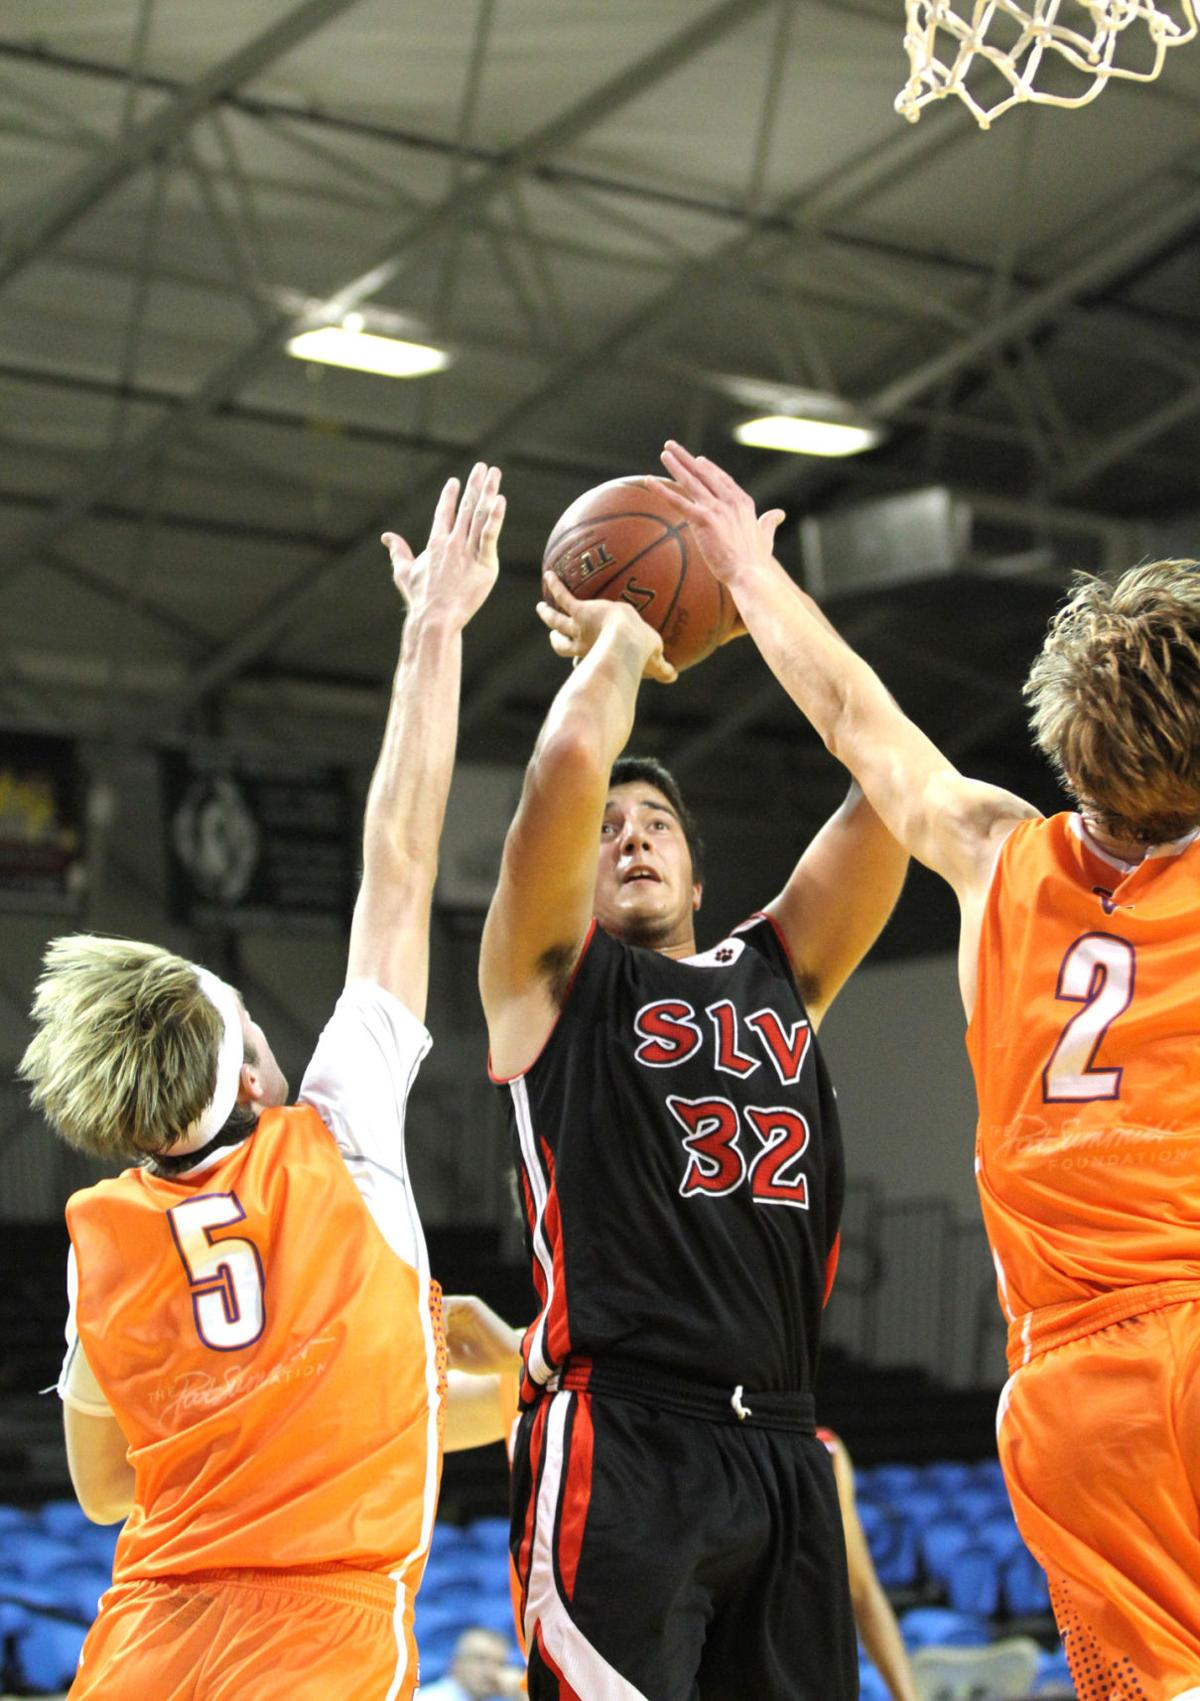 Boys Basketball Jan. 17: SLV 72, Scotts Valley 50